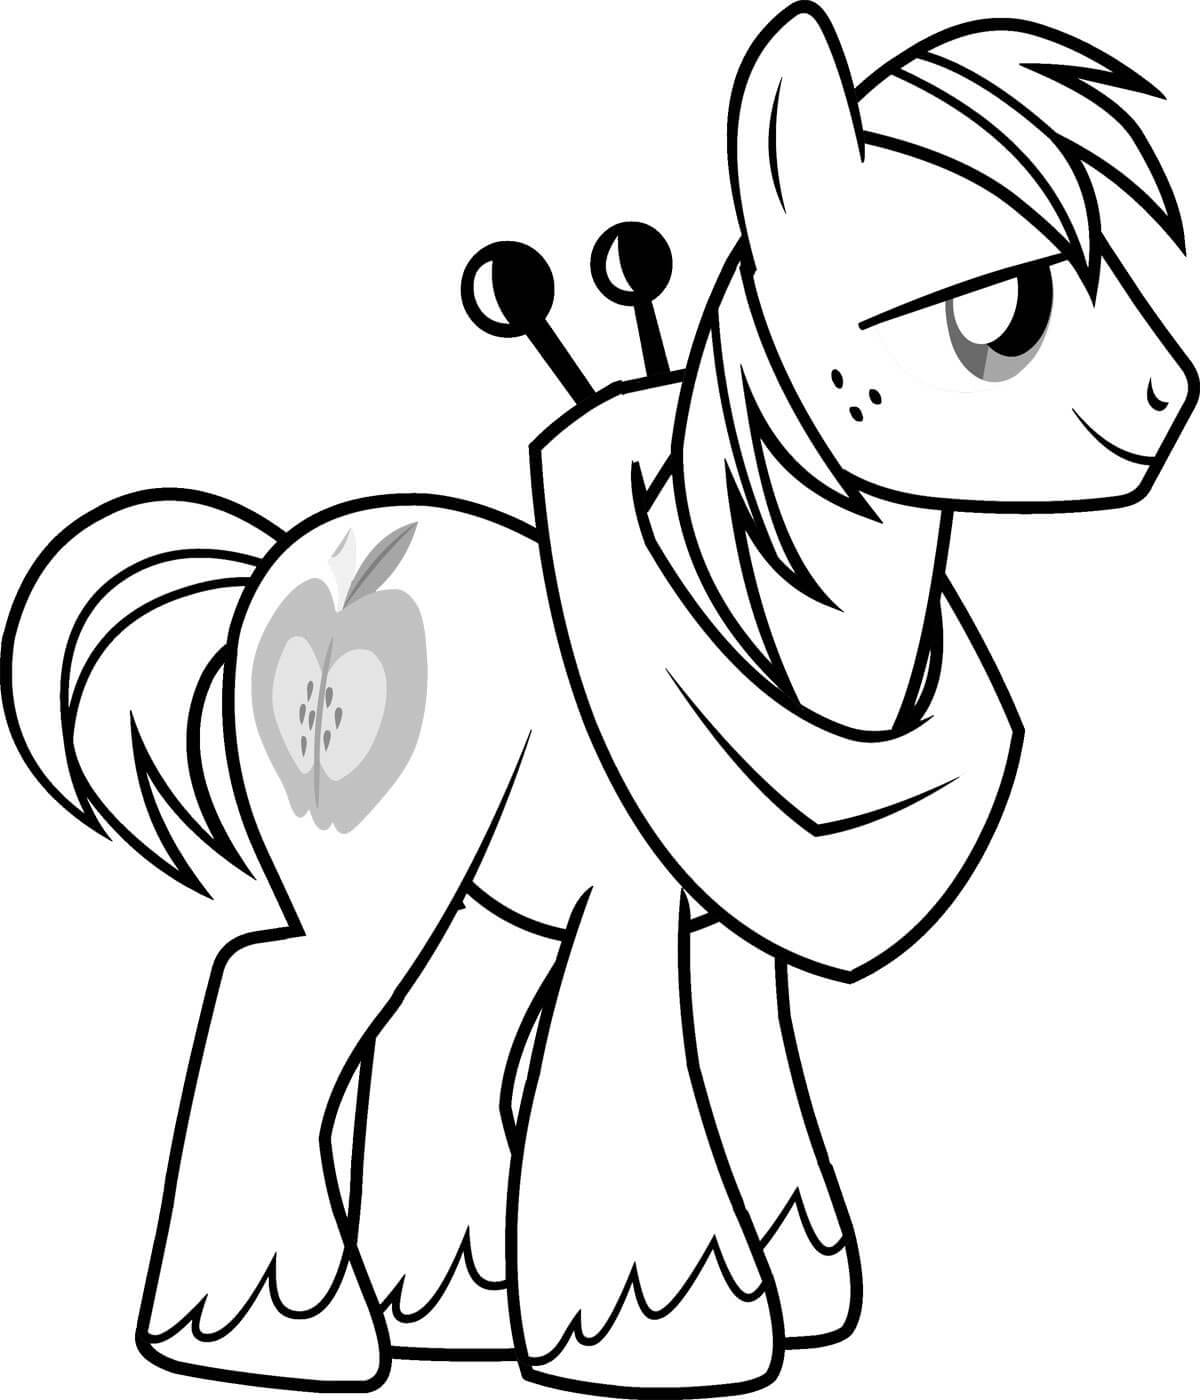 Uncategorized Baby My Little Pony Coloring Pages free printable my little pony coloring pages for kids print mlp color mlp